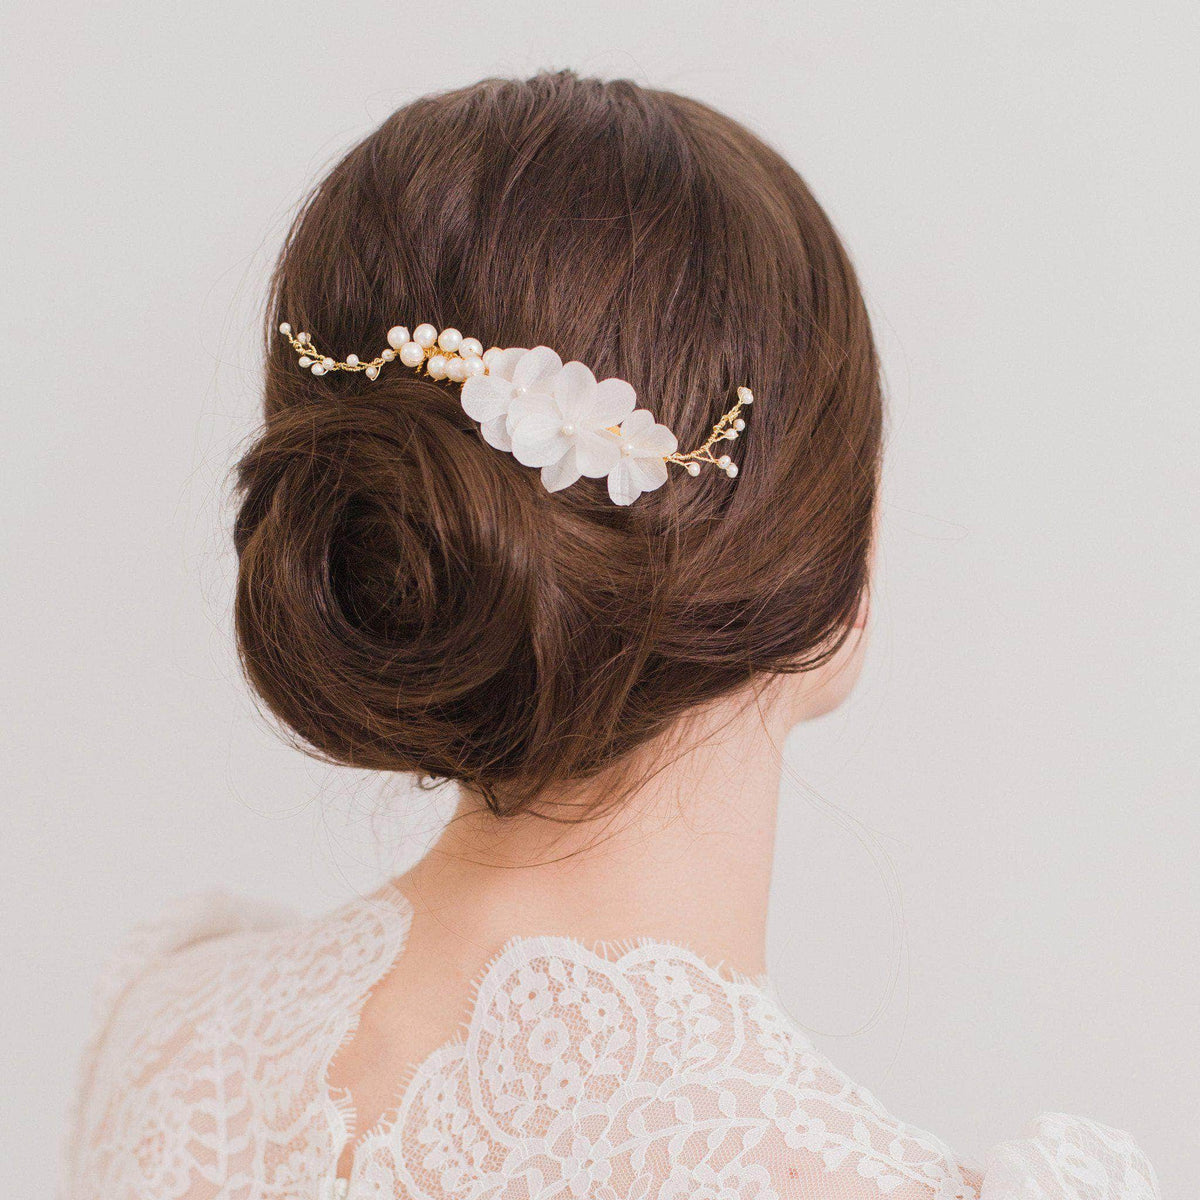 Silk flower silver comb for a bride - 'Helvia'